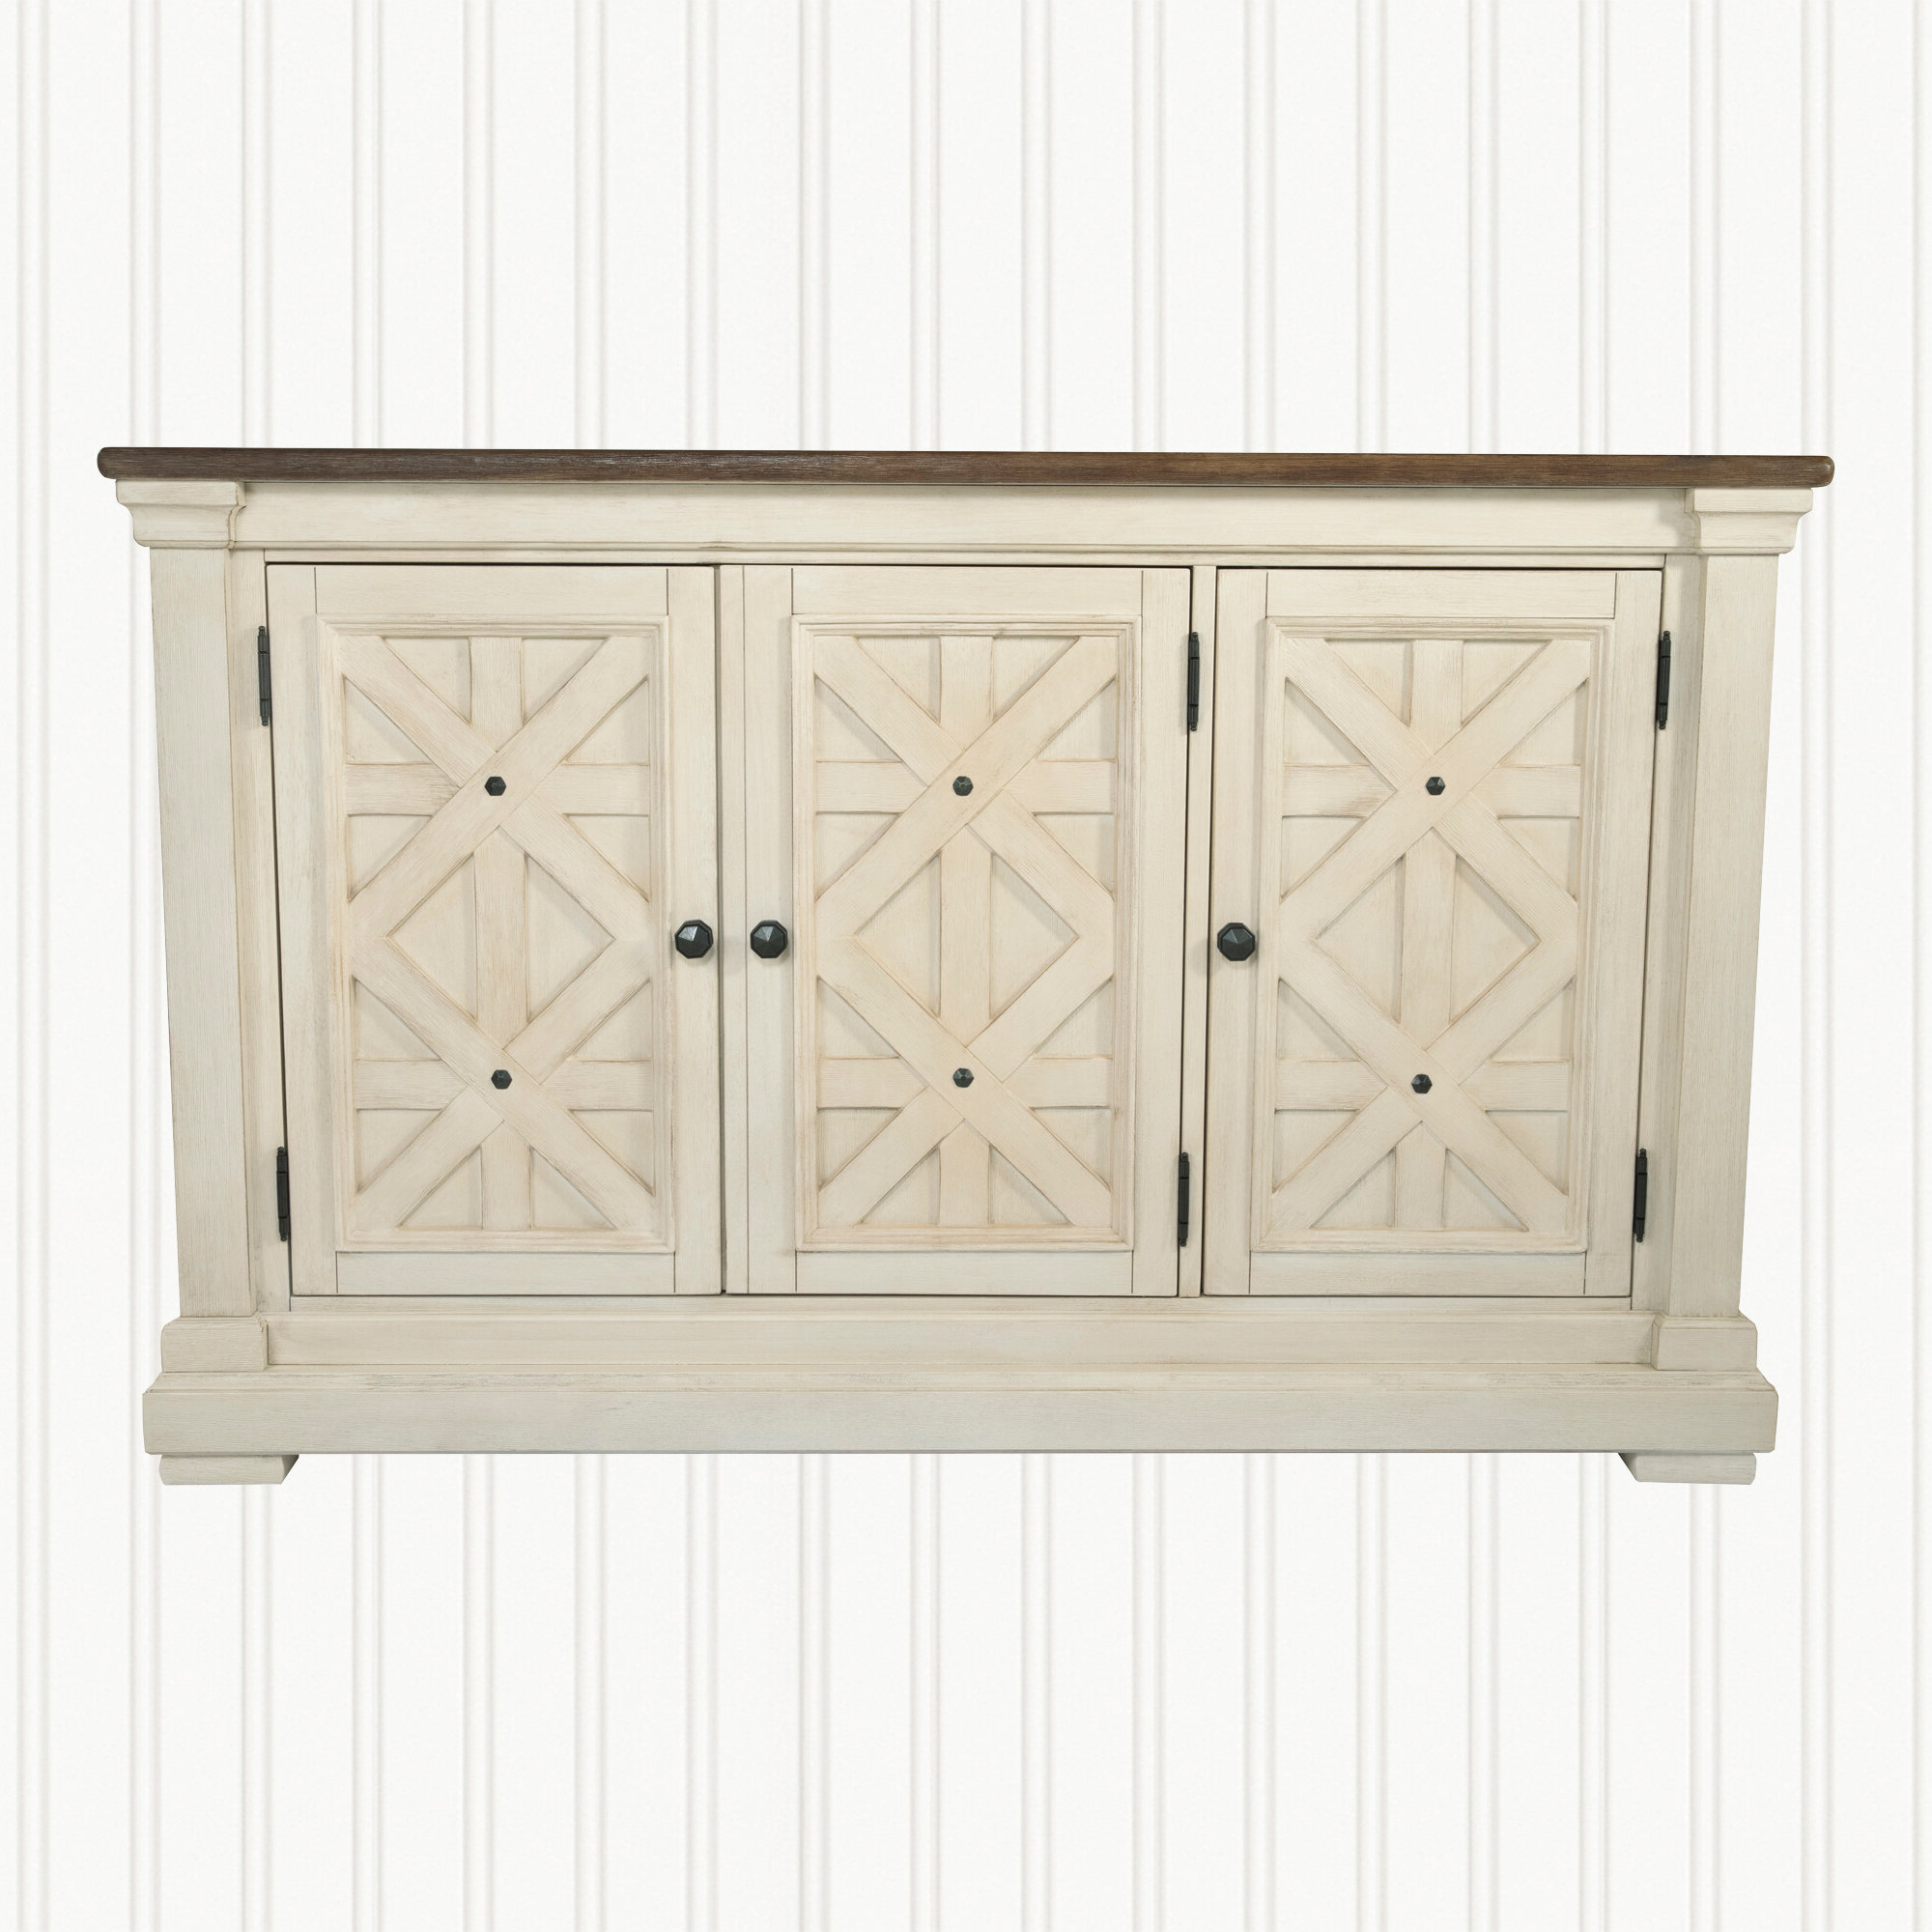 Recent Farmhouse & Rustic White Wood Sideboards & Buffets (View 17 of 20)